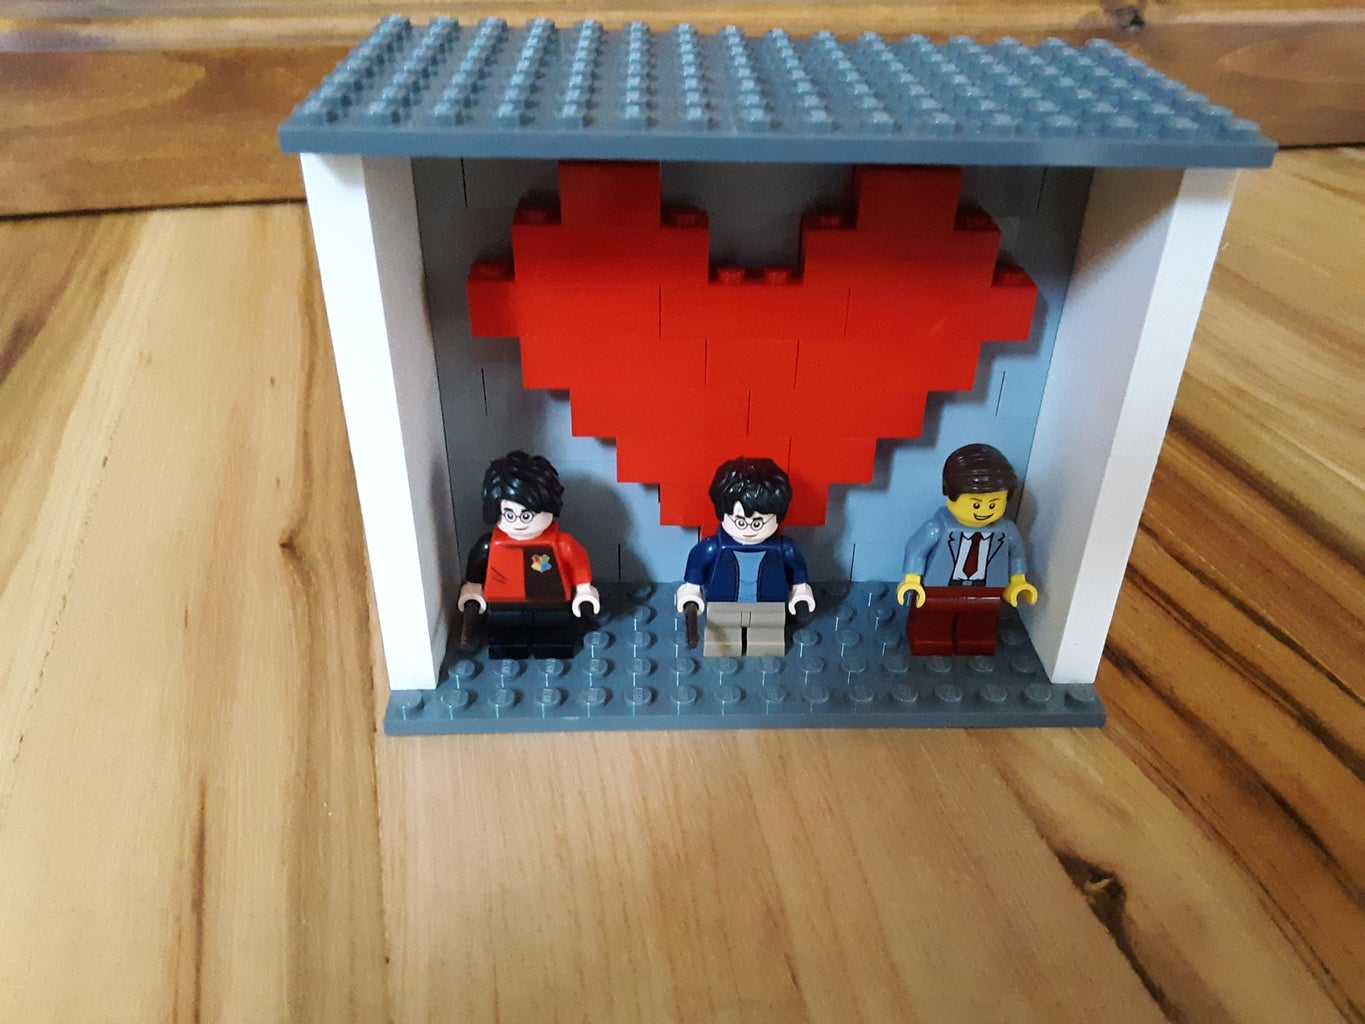 A Heart Stand for All Your Favorite Lego Figurines